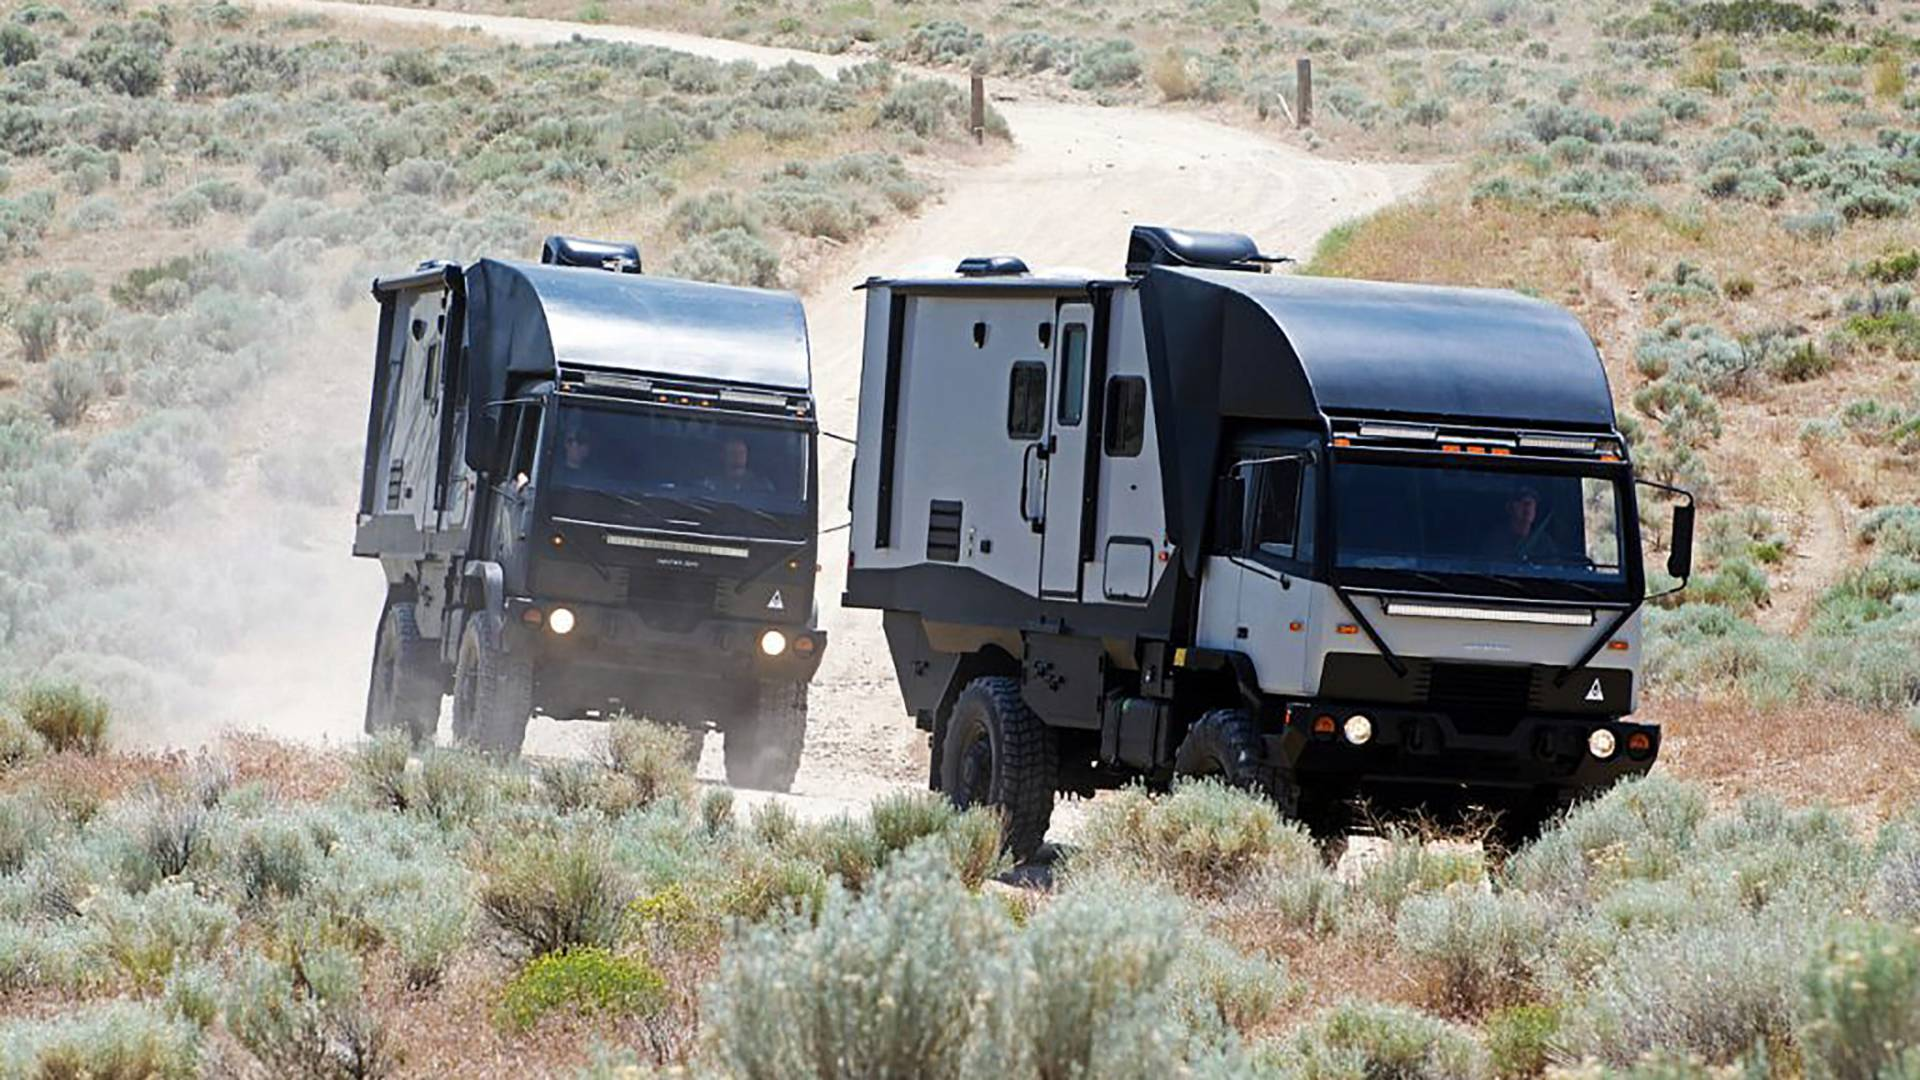 Predator 6 6 Is A Military Vehicle Disguised As An Off-Road RV